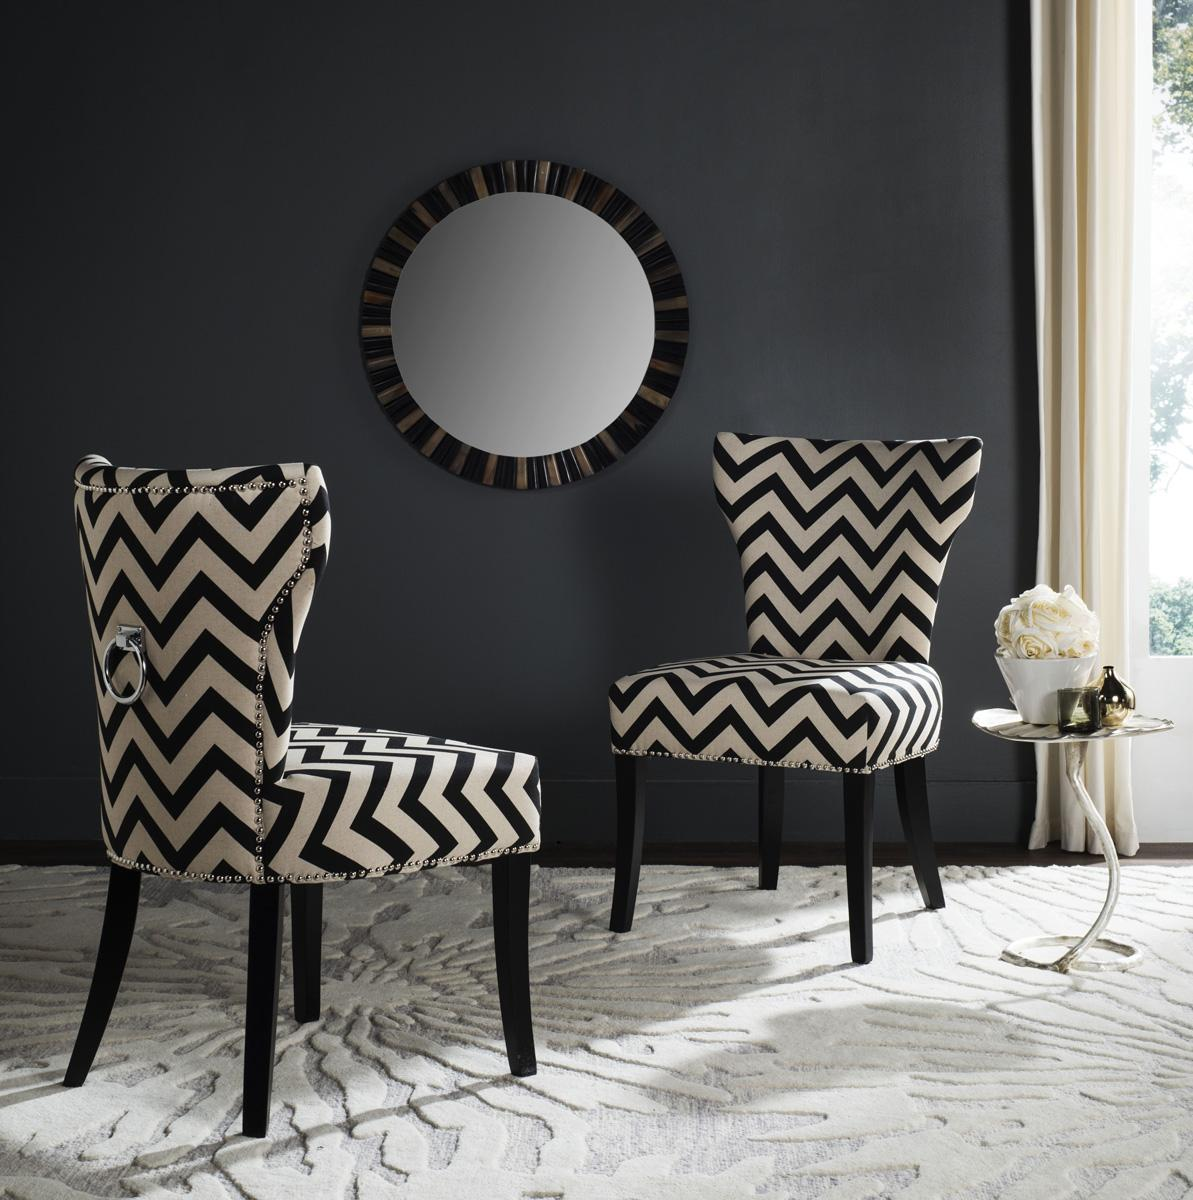 Dining Room Chairs | Set of 2 - Safavieh.com